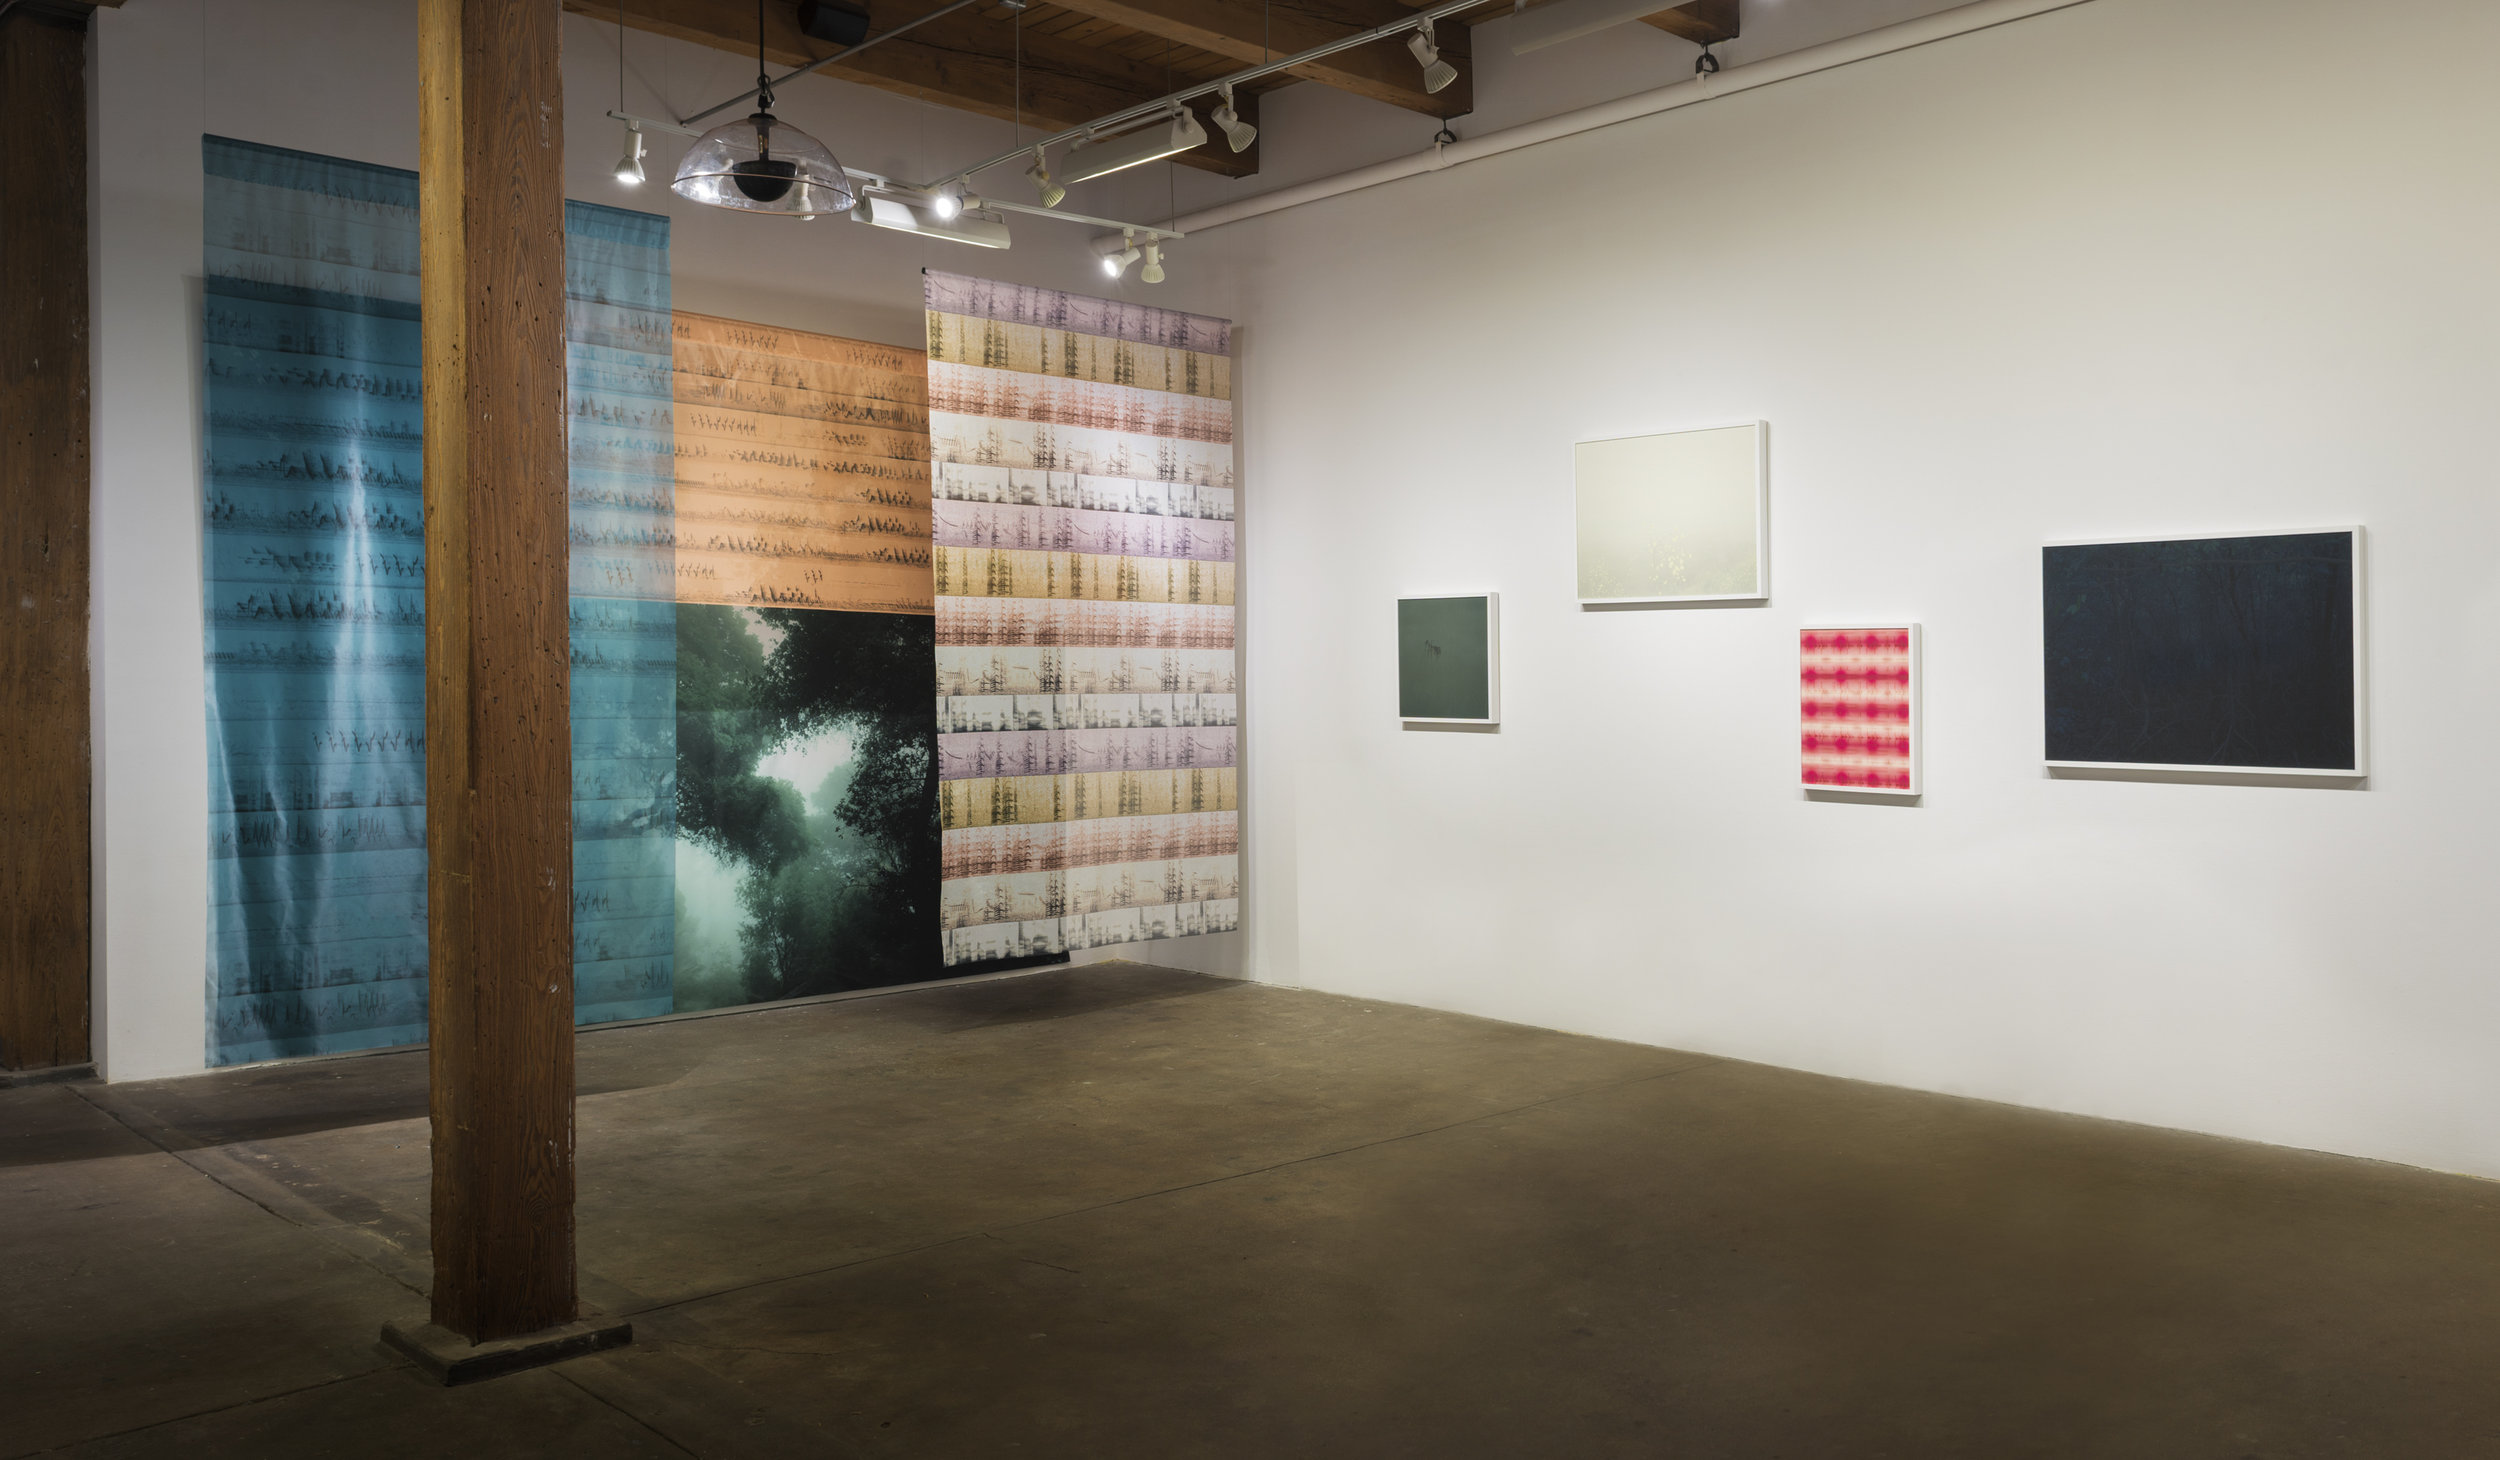 Green Daze Migration (Nene, and Indigo Bunting, male and female) Installation View